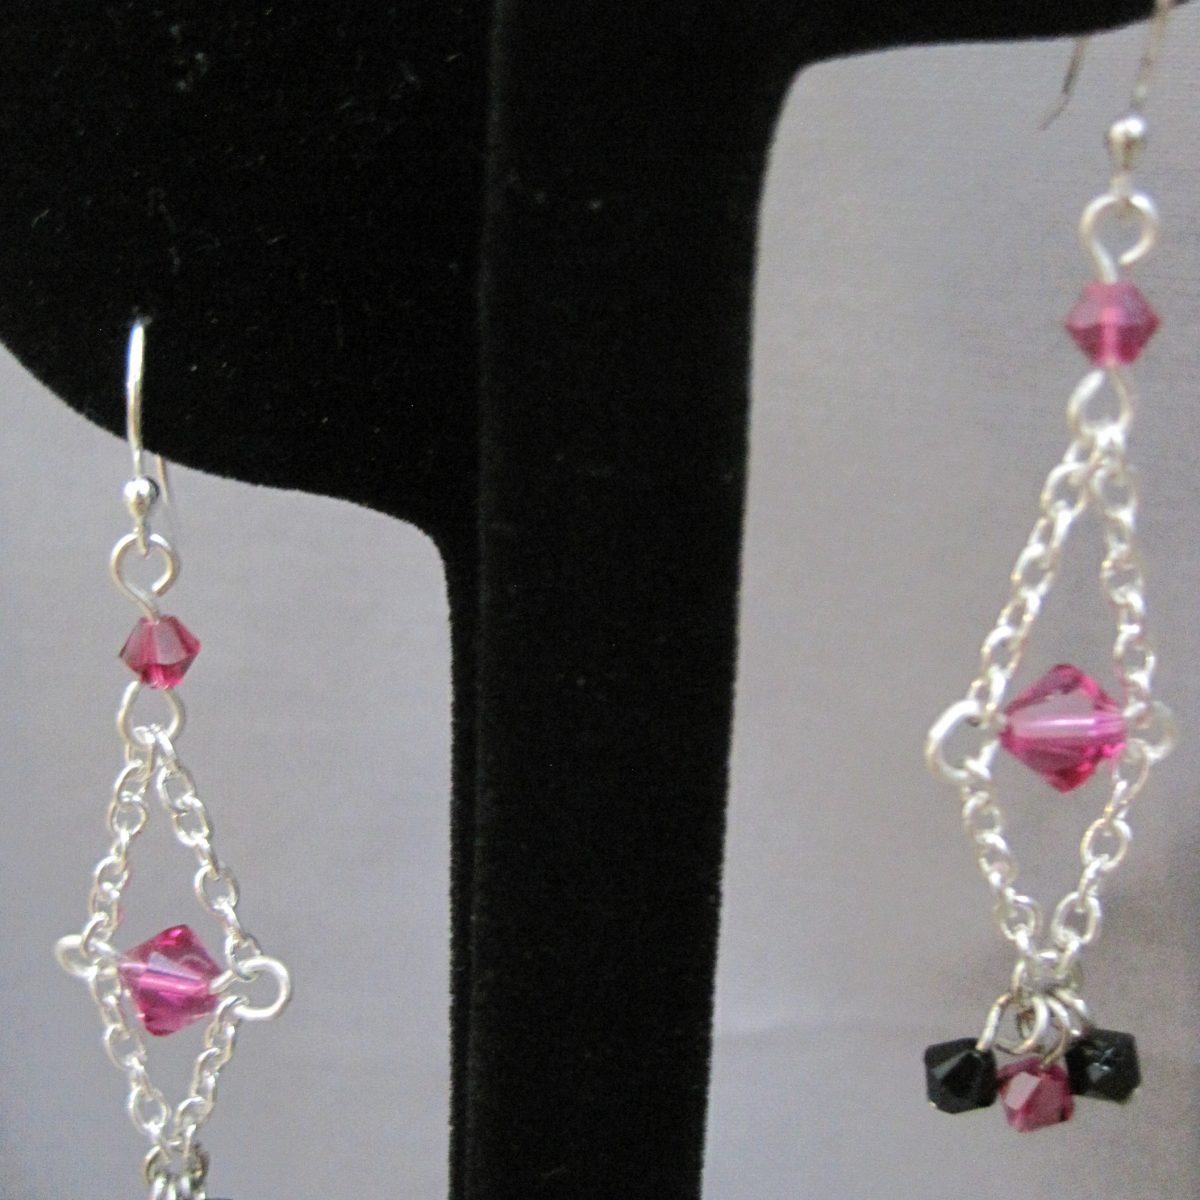 Raspberry Pink and Black Swarovski Crystals, Silver Chain Dangle Earrings